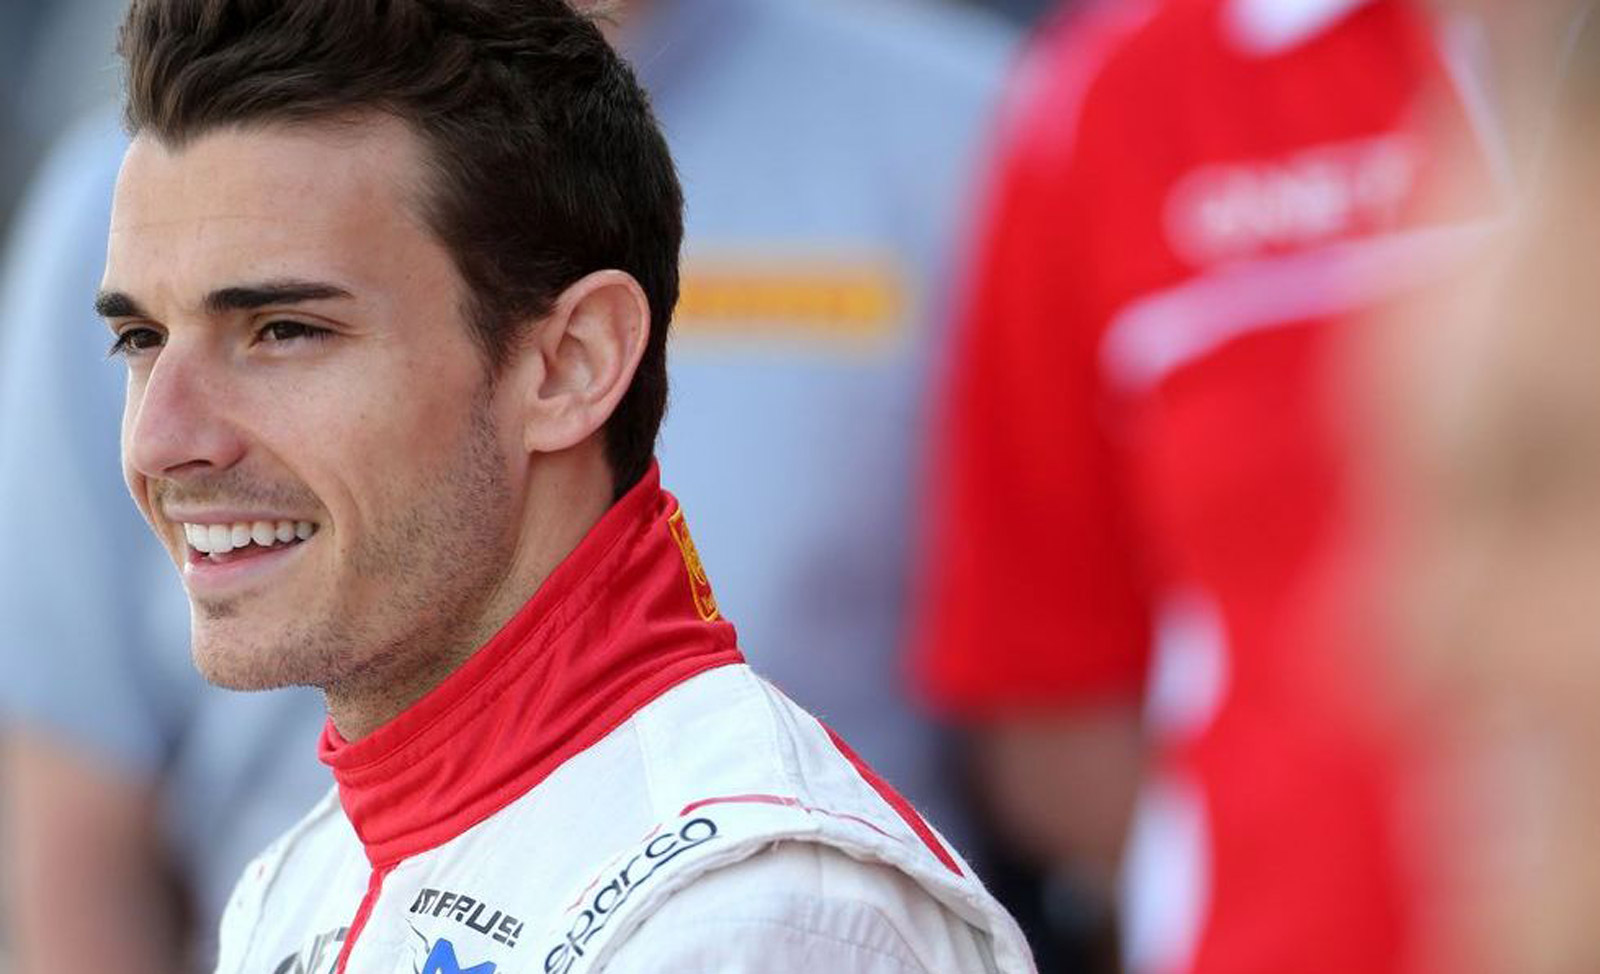 Jules Bianchi's Family Release Statement Regarding Injured F1 Driver